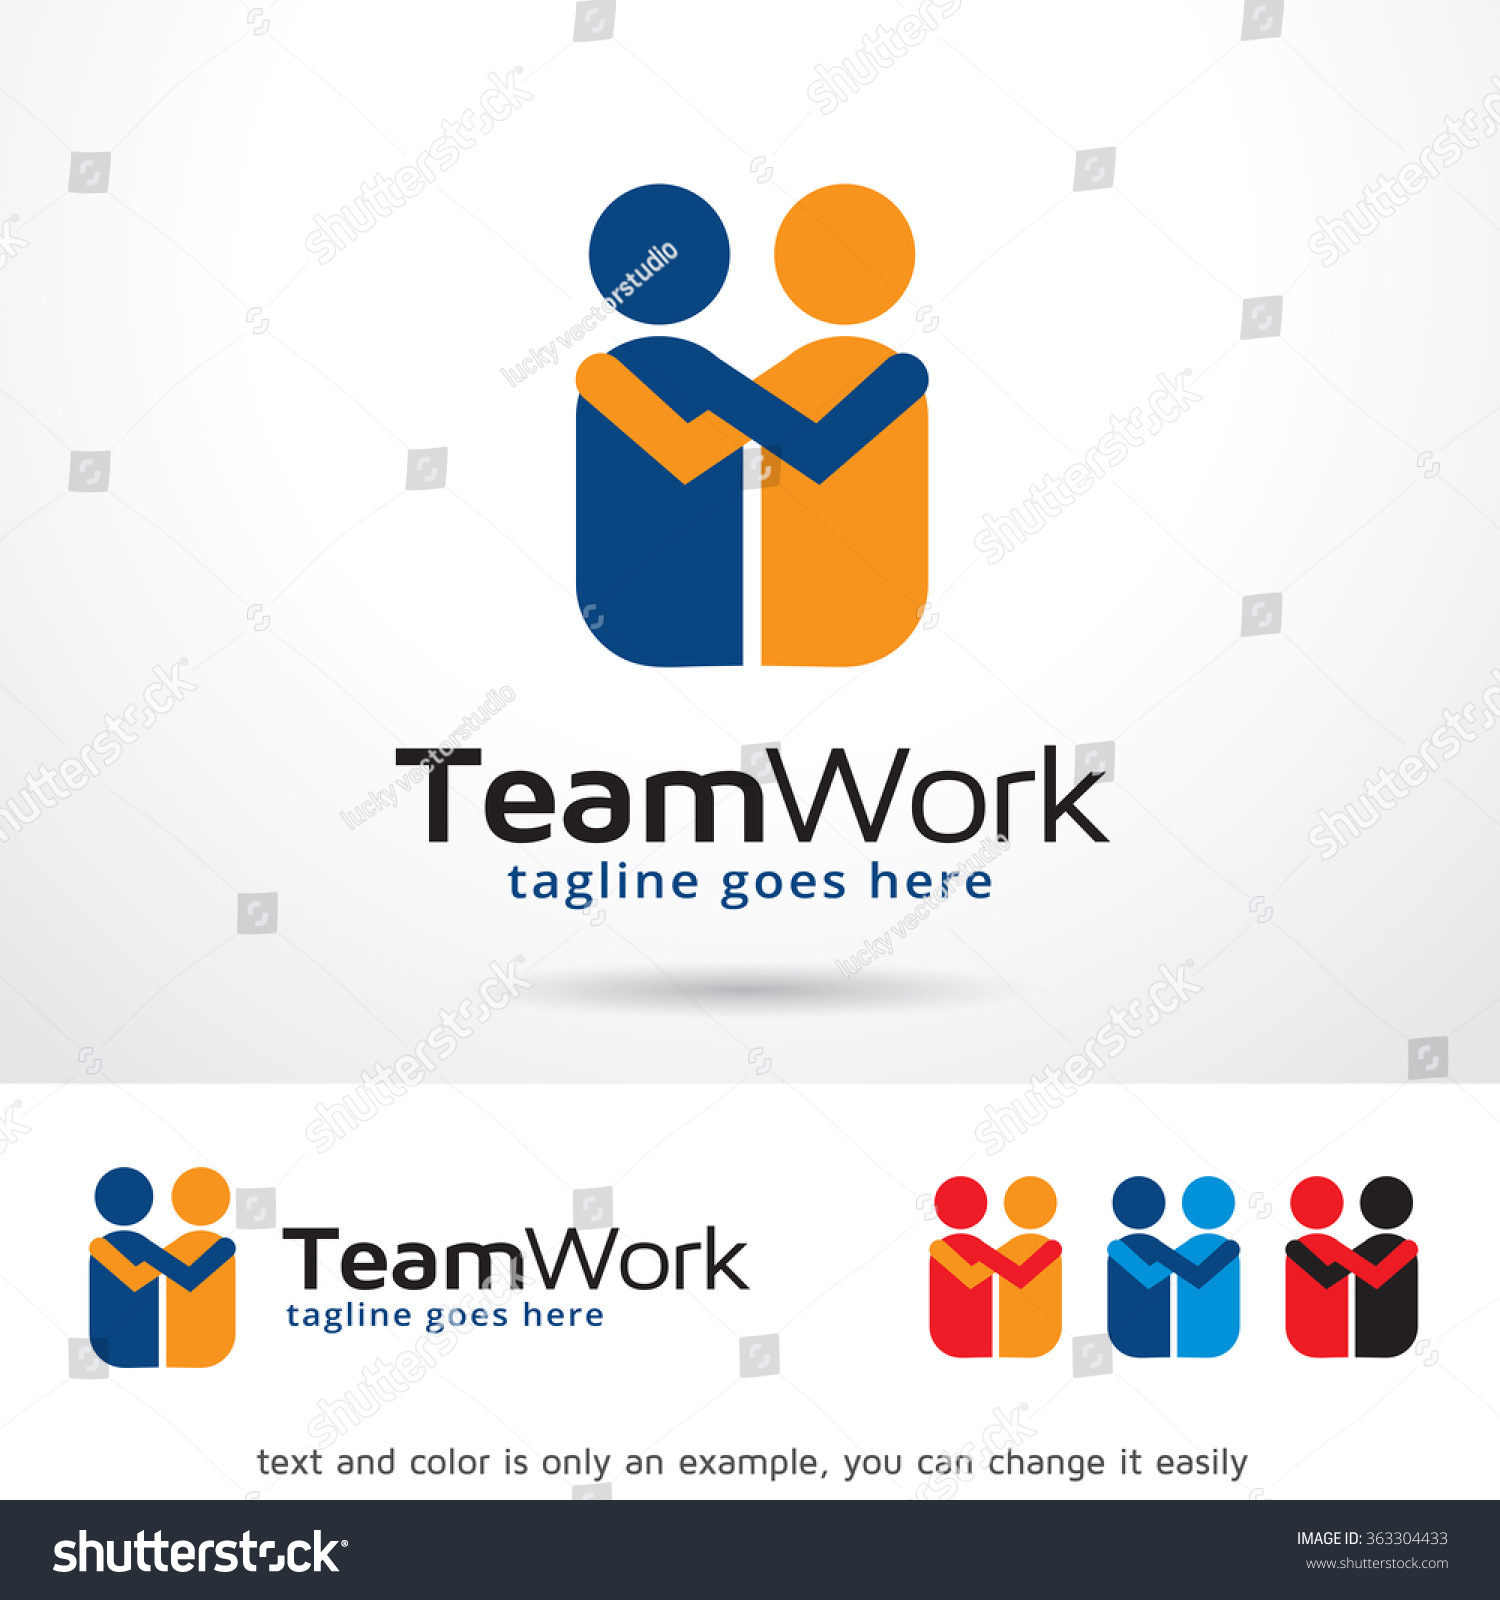 team work logo template design vector stock vector  team work logo template design vector